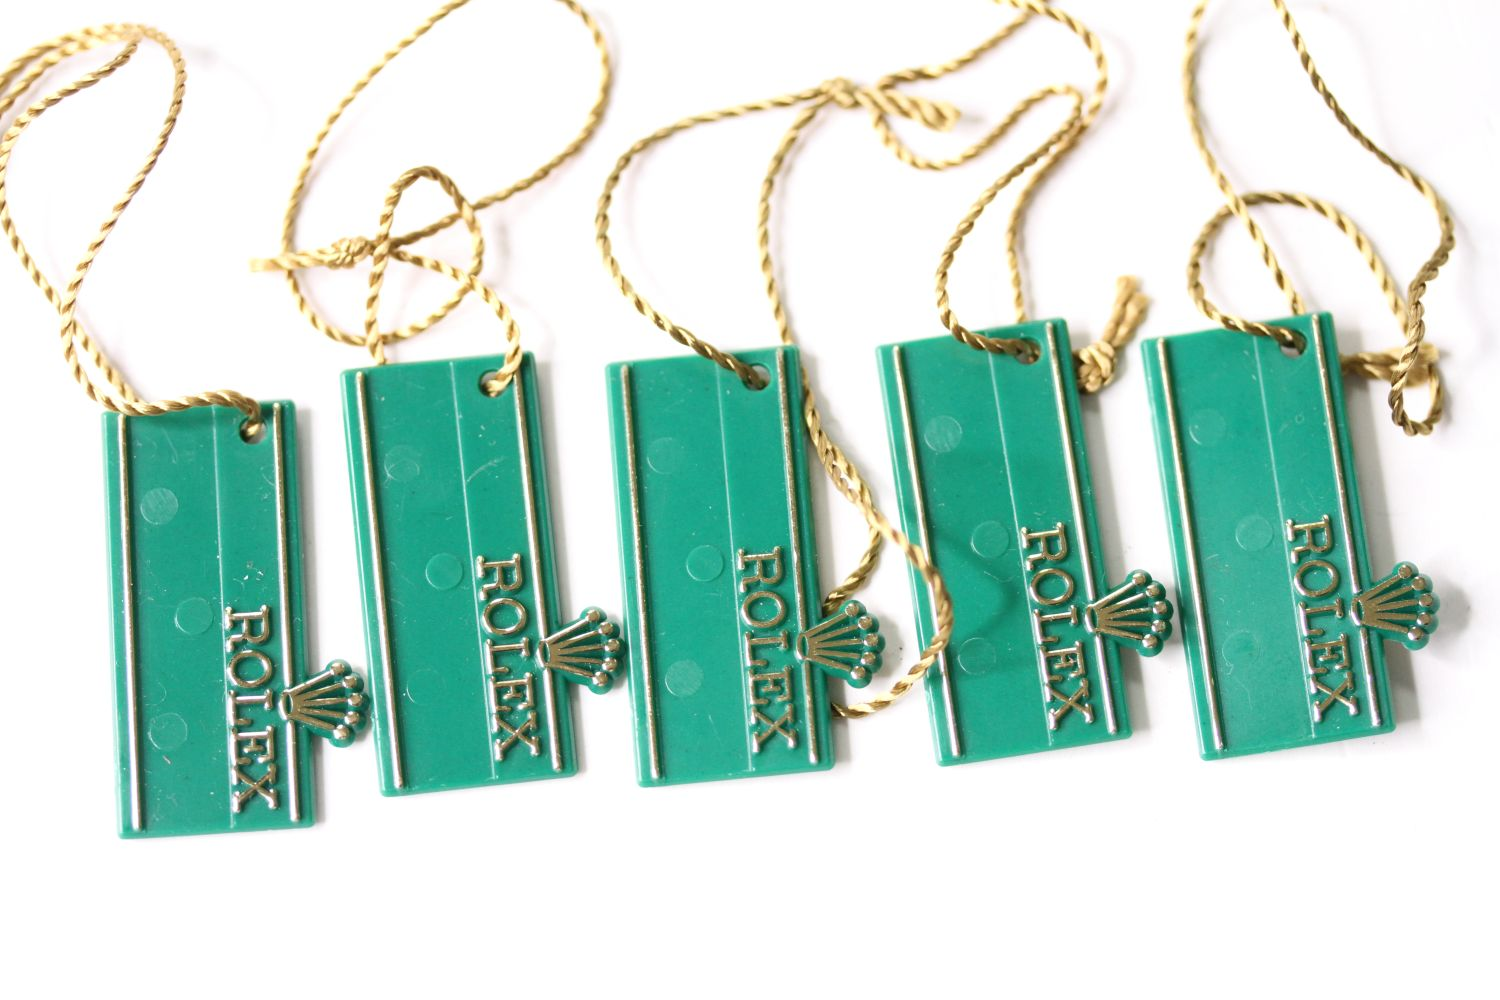 Set of NOS 1970s Rolex 'Swimpruf' swing tags for references; 6263 / 6265 / 5513 / 5512 / 1680 / 1665 - Image 2 of 2